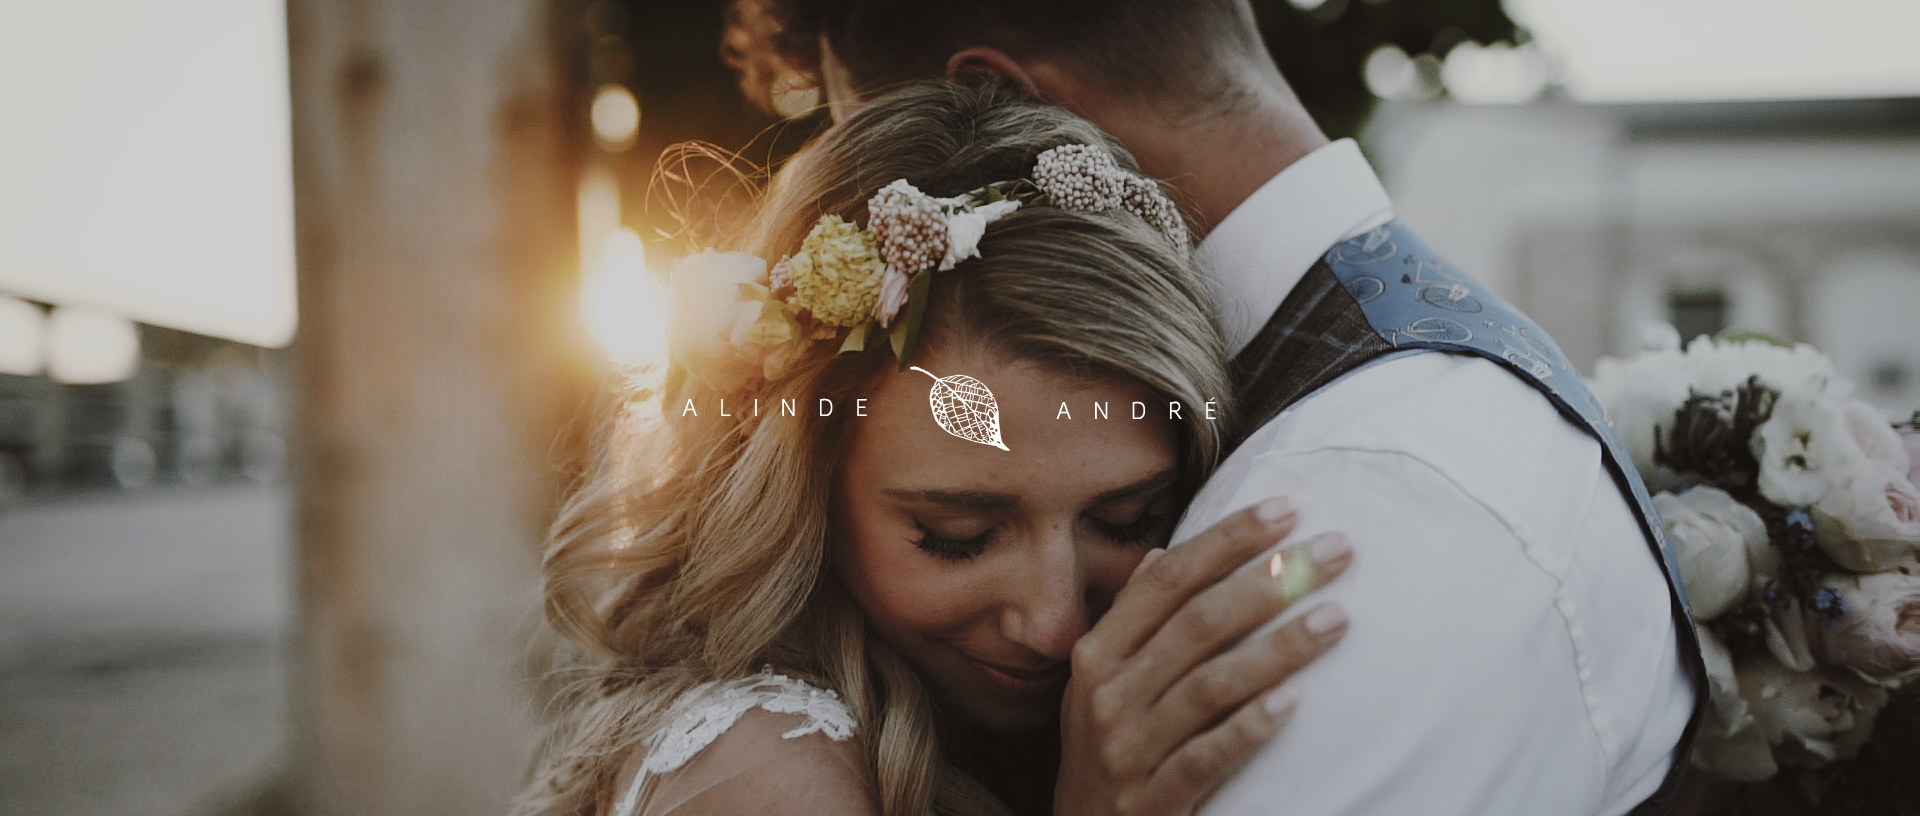 Alinde + André | Dresden, Germany | Elements Deli